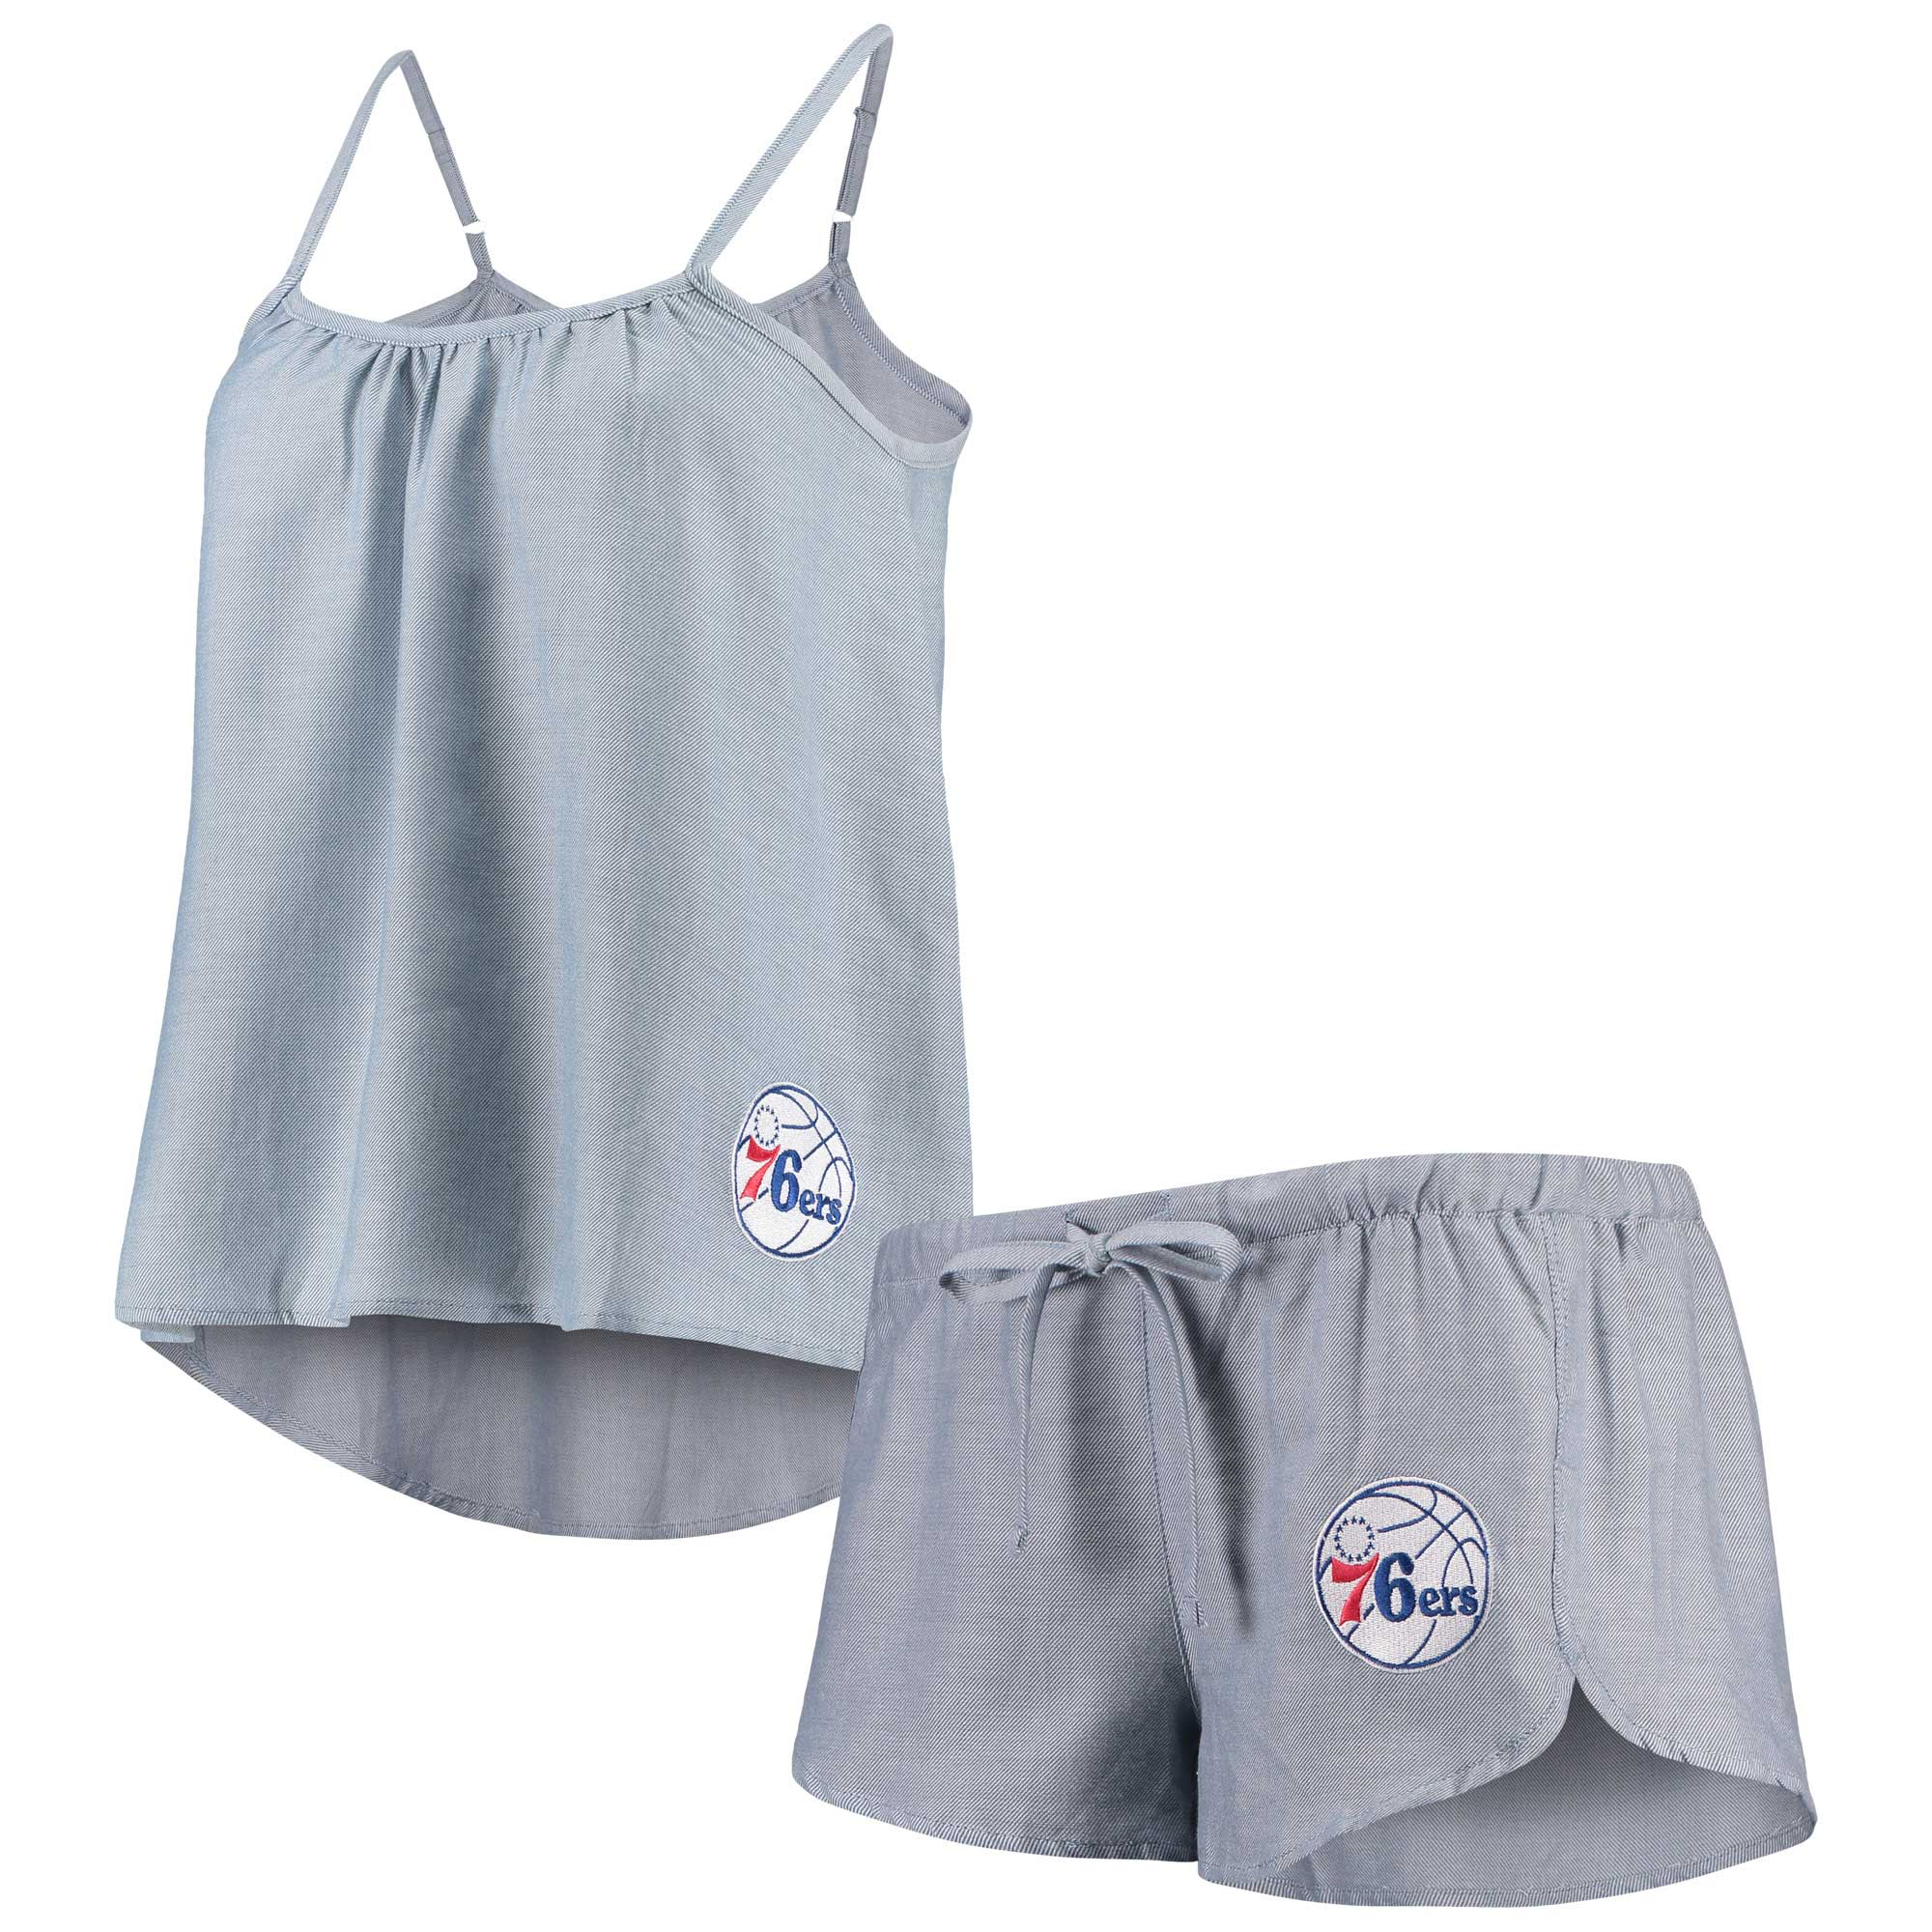 Philadelphia 76ers Concepts Sport Women's Breakaway Chambray Tank Top and Shorts Sleep Set - Blue